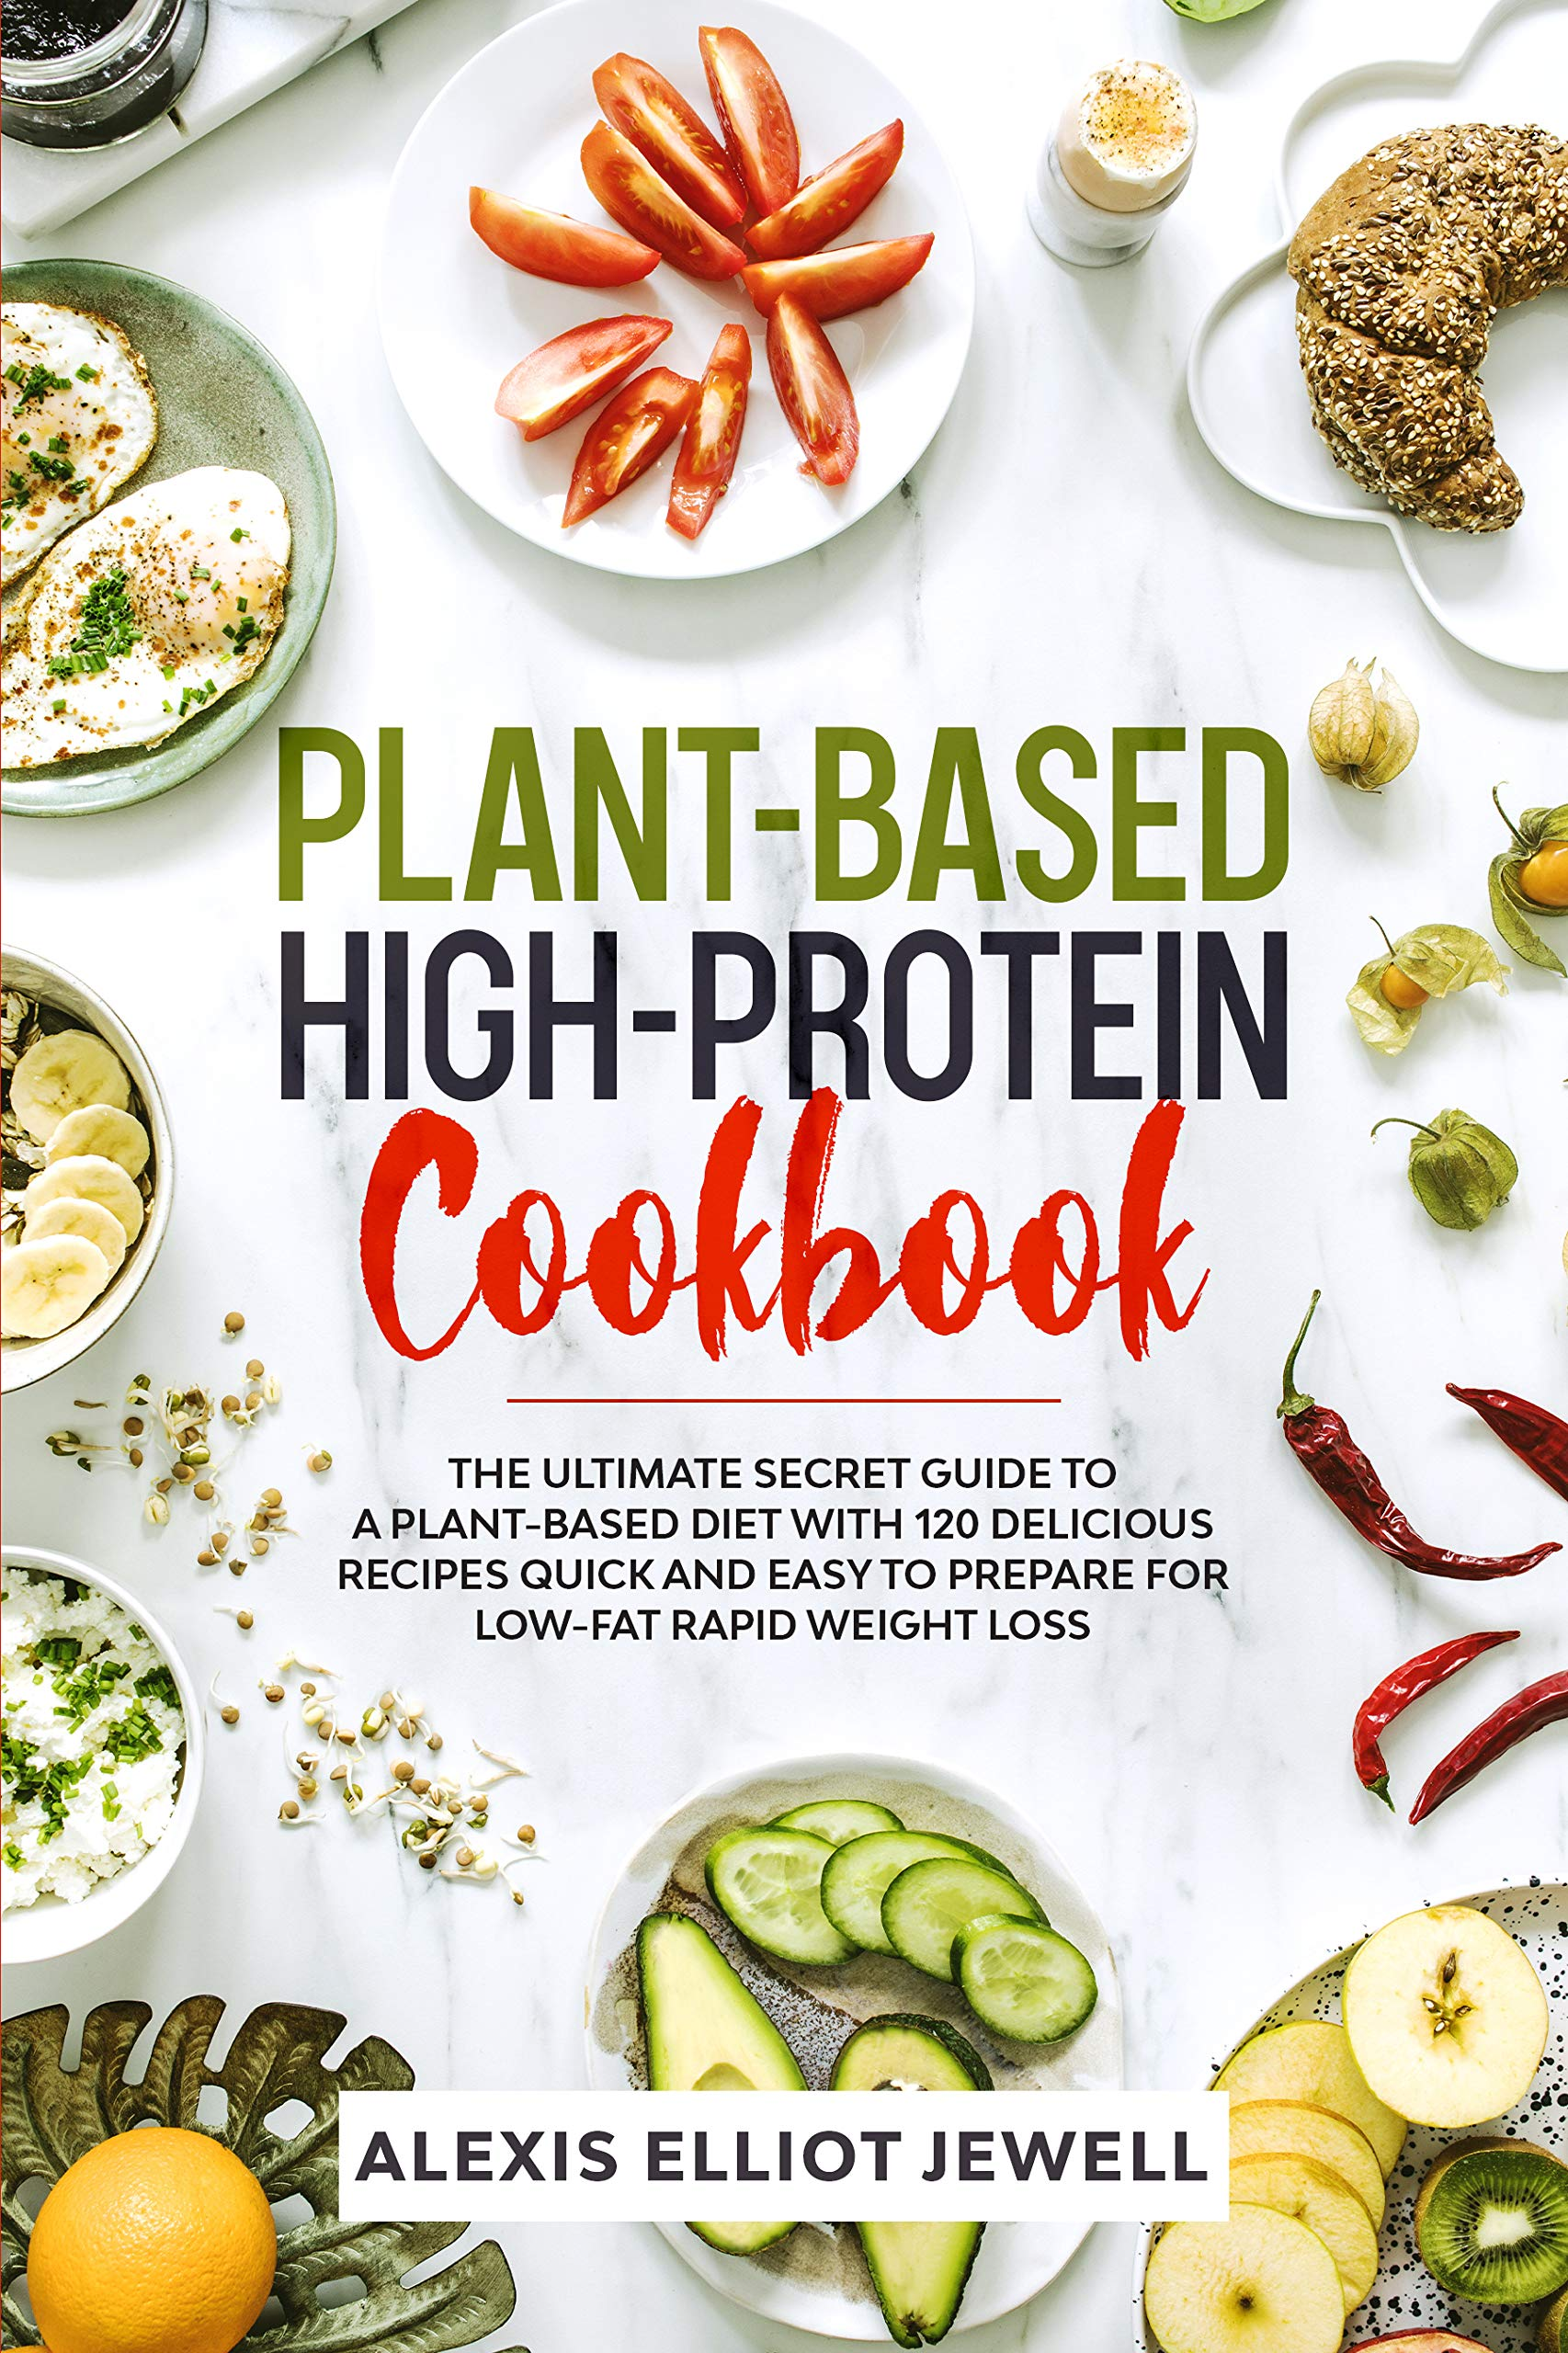 PLANT-BASED HIGH-PROTEIN COOKBOOK: The Ultimate Secret Guide To a Plant-Based Diet With 120 Delicious Recipes QUICK and EASY To Prepare for Low-Fat Rapid Weight Loss